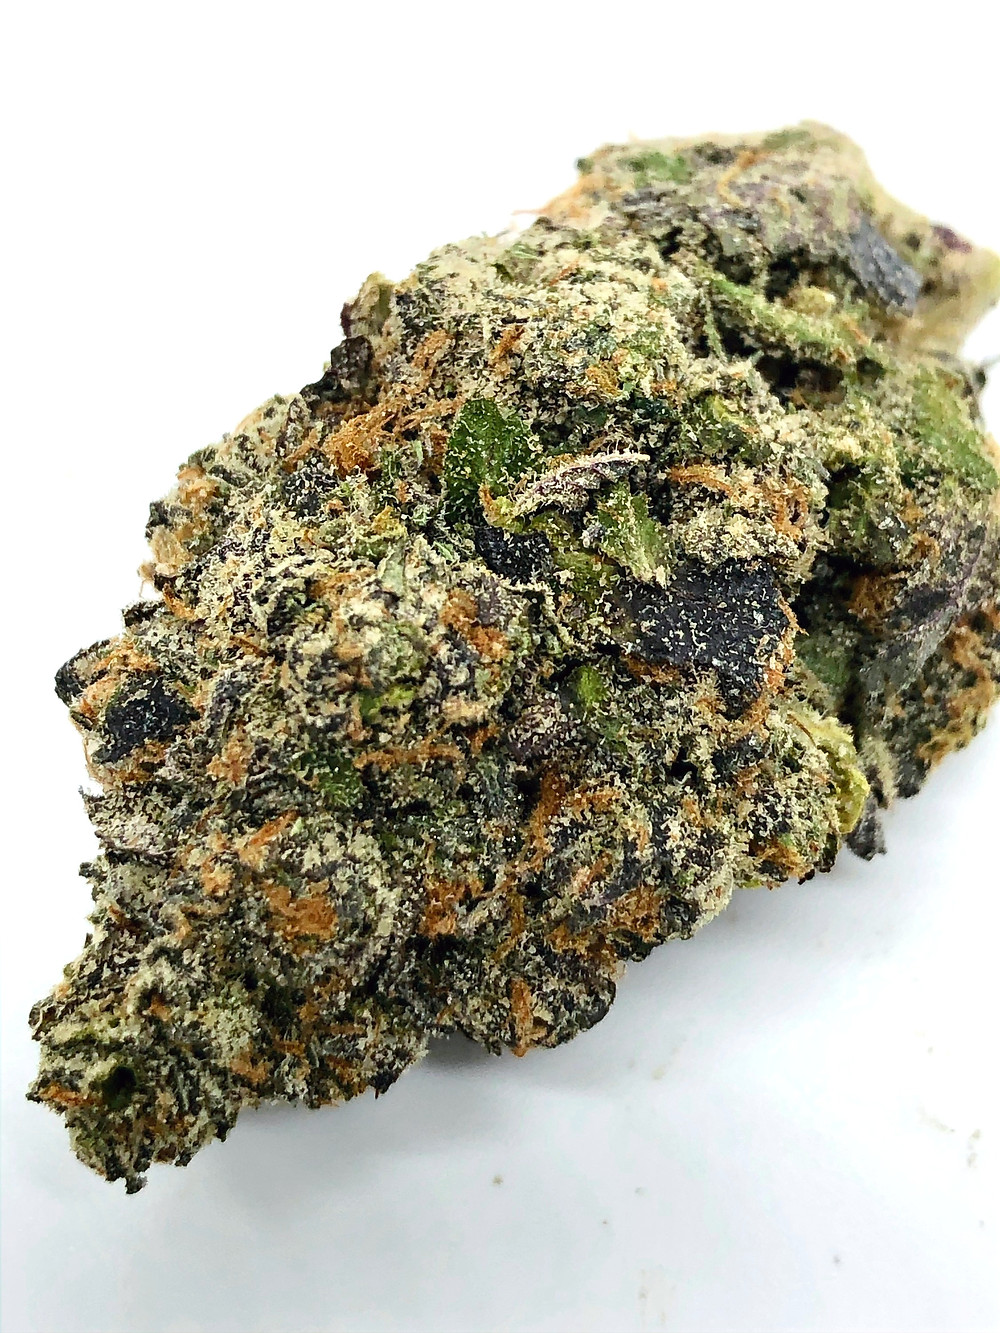 gruntz-review-top-secret-dc-weed-delivery-side-view